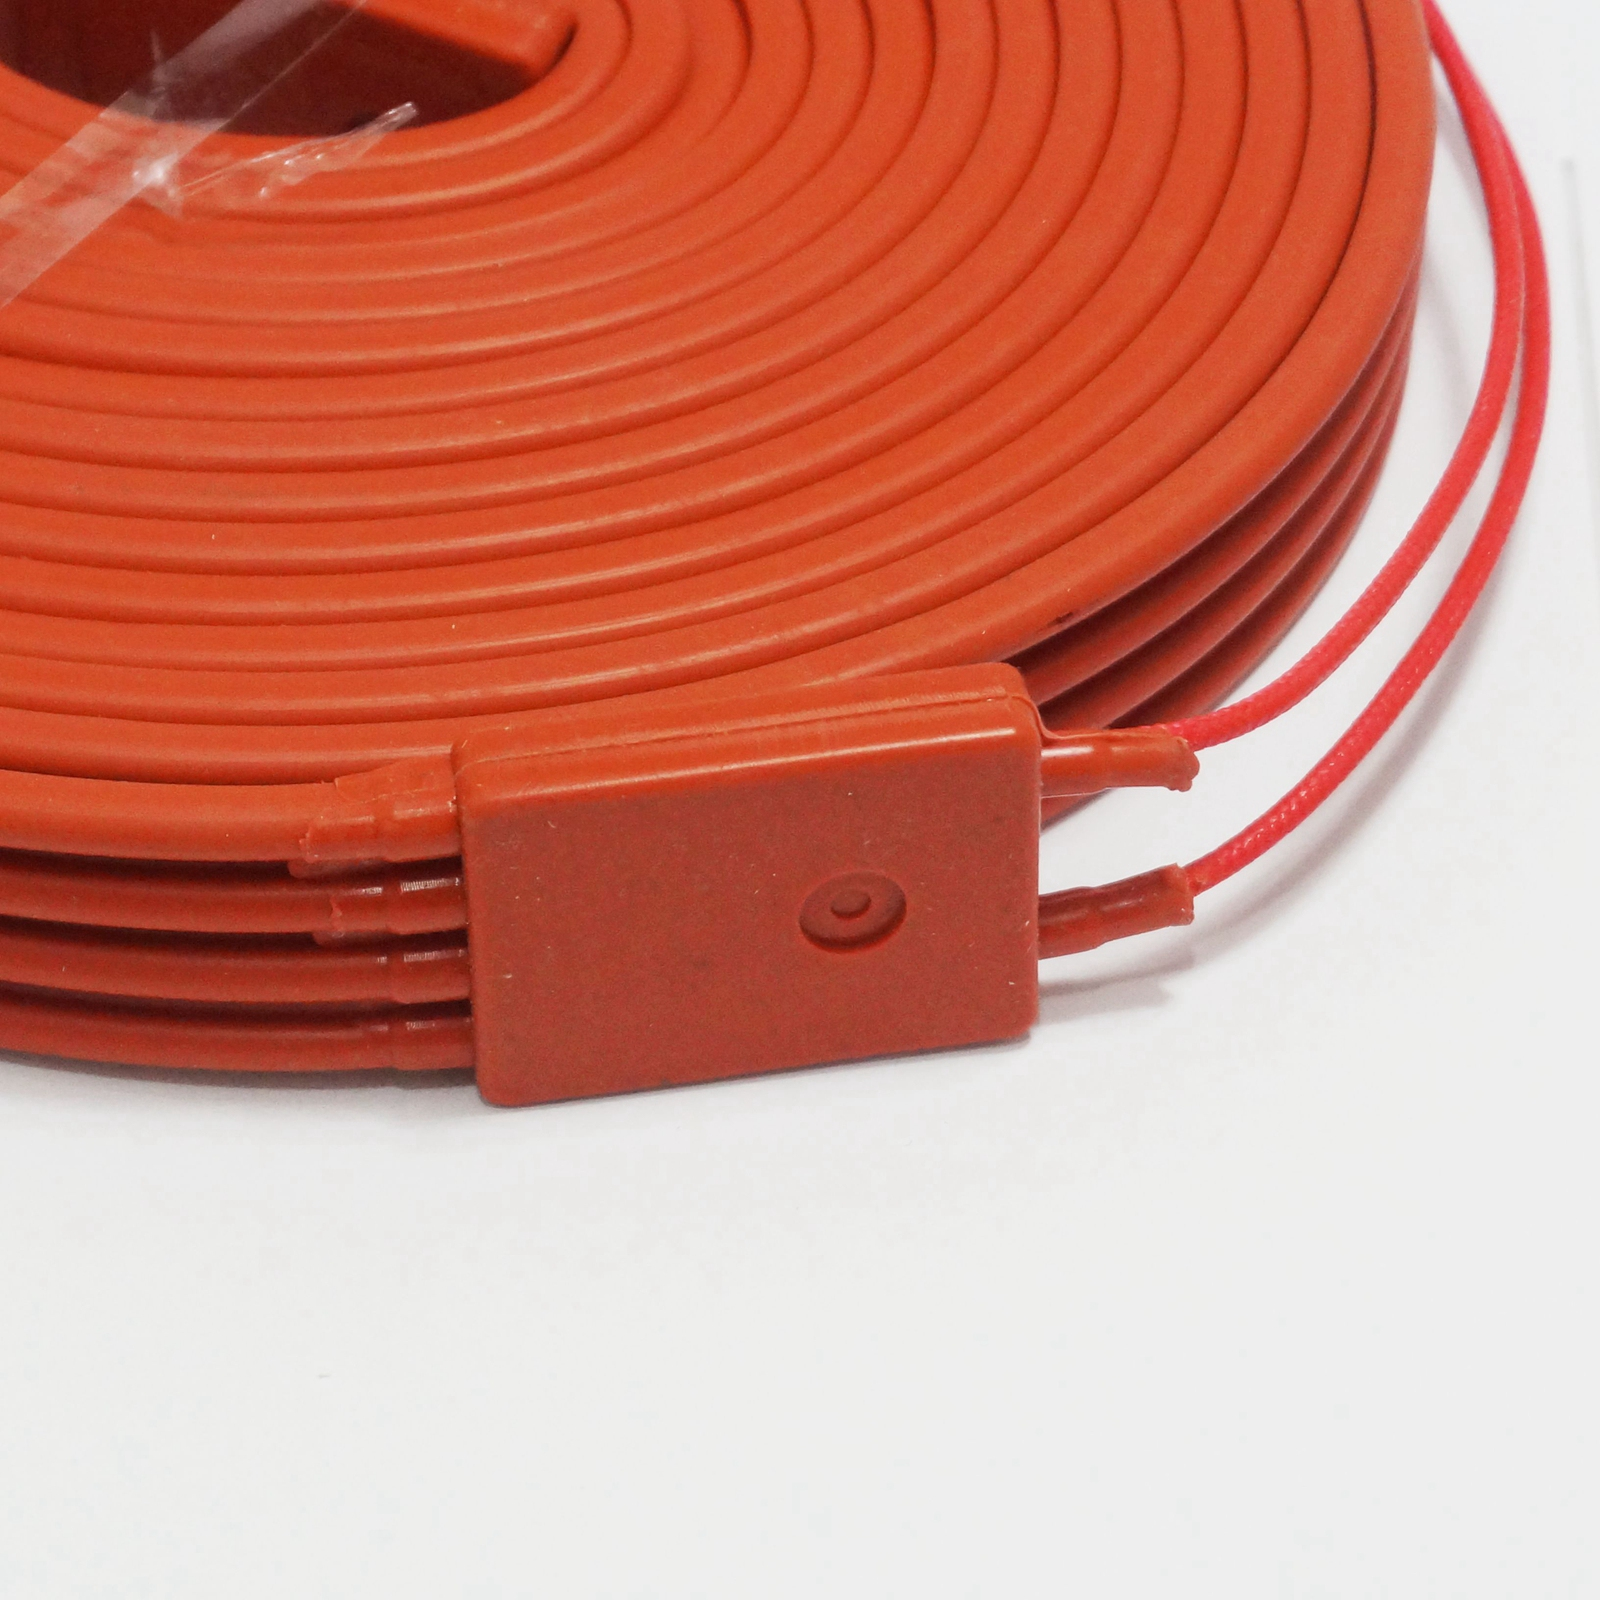 hight resolution of 220v ac 25x5000mm 500w waterproof flexible silicone rubber heater heating belt unfreezer for pipeline electrical wires in wires cables from lights